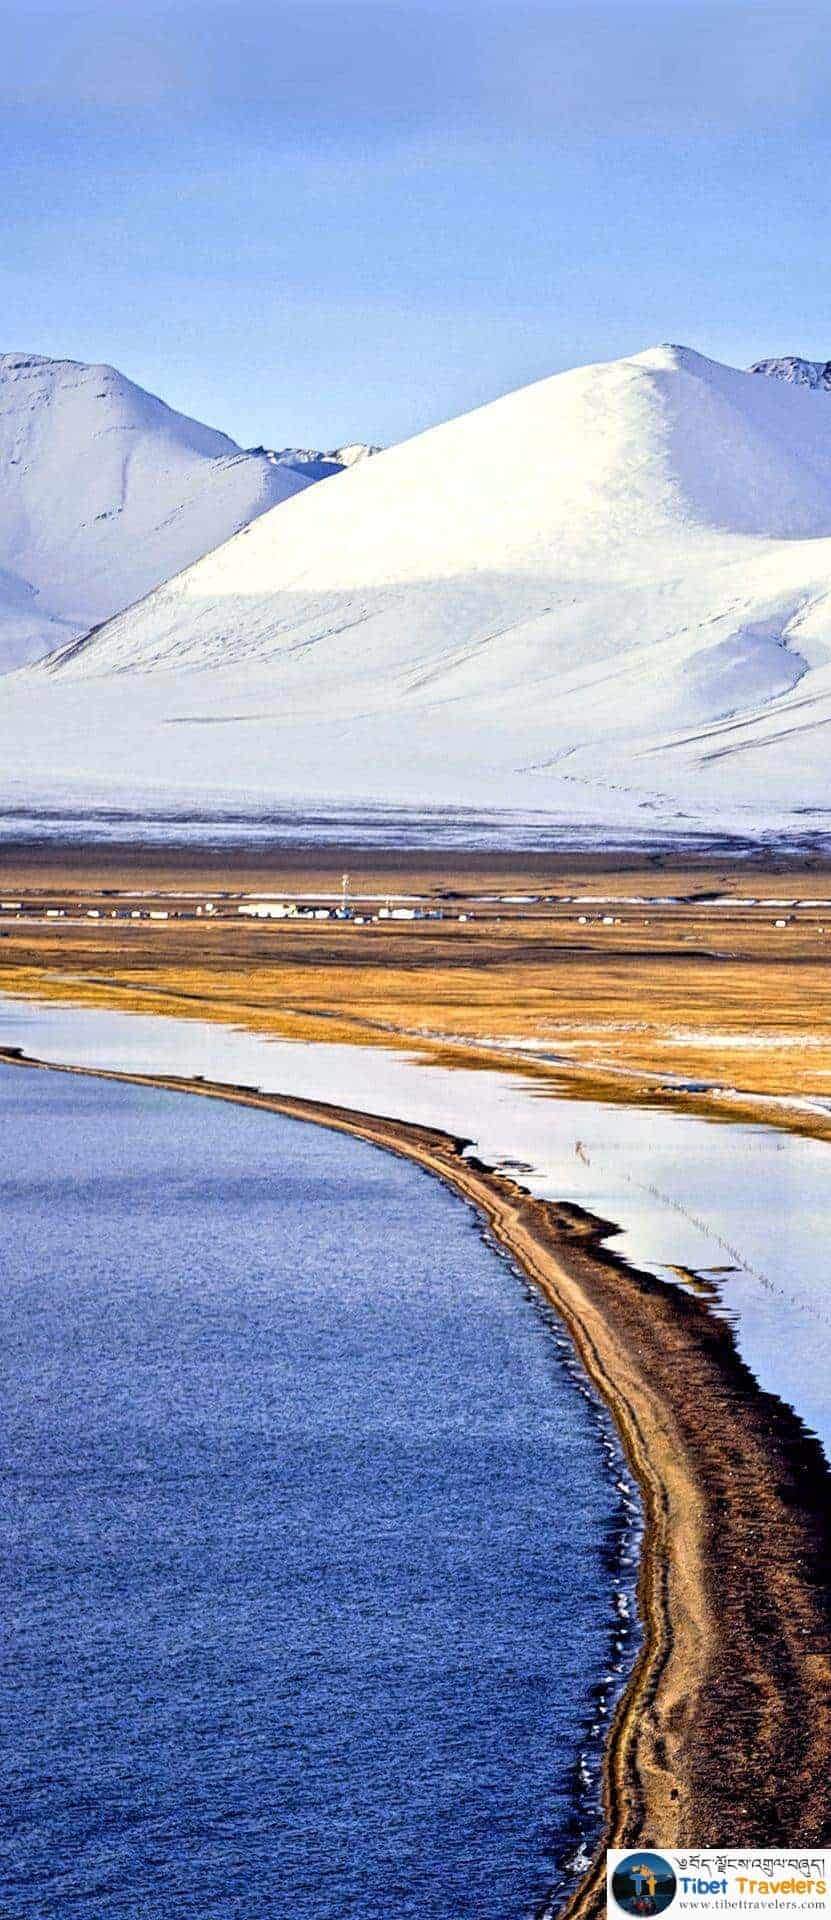 When Is  Best Time To Travel Tibet?